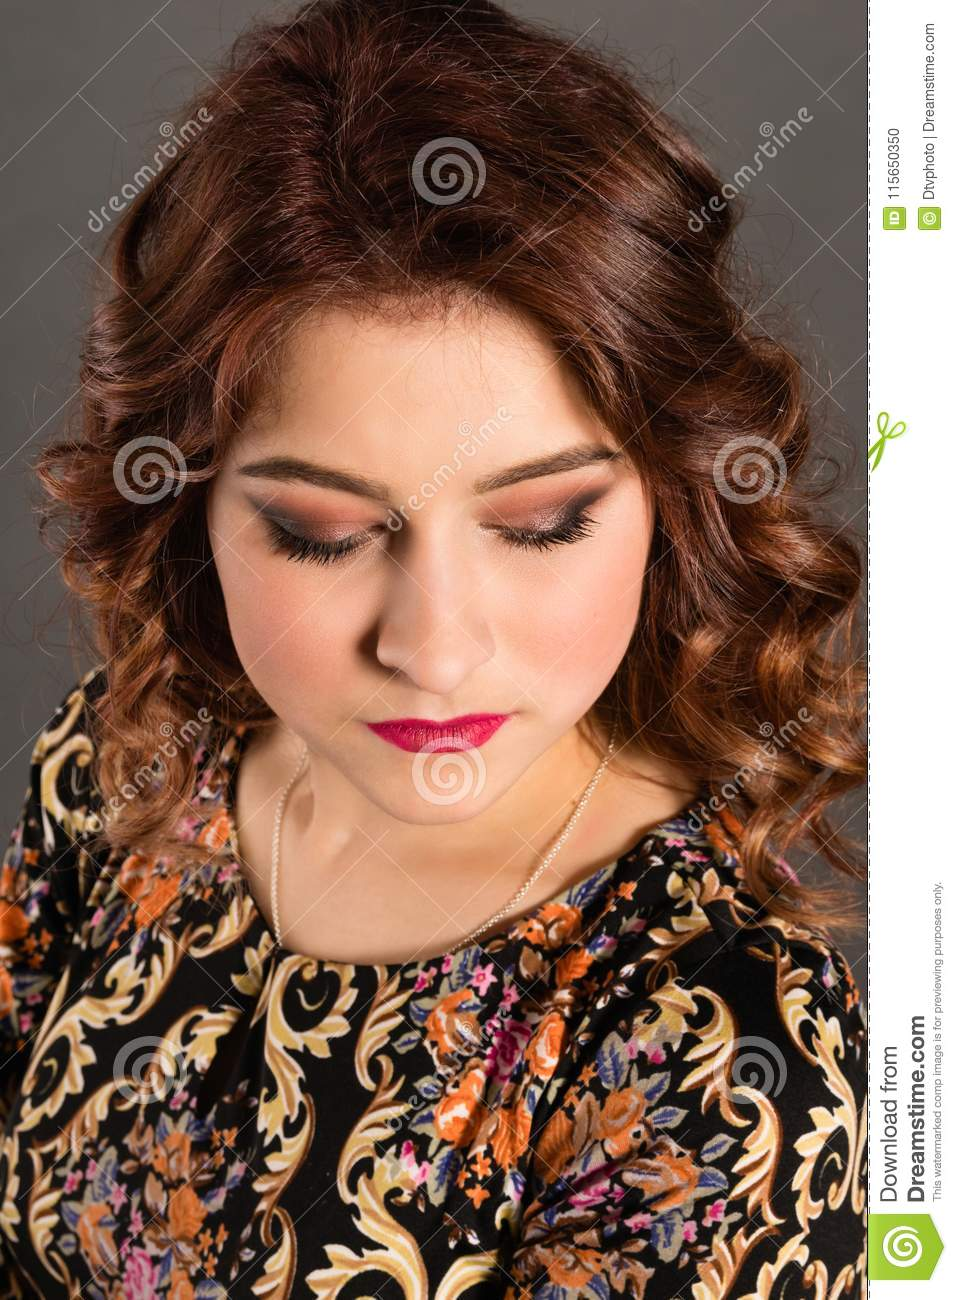 Portrait of an attractive girl with lowered eyes